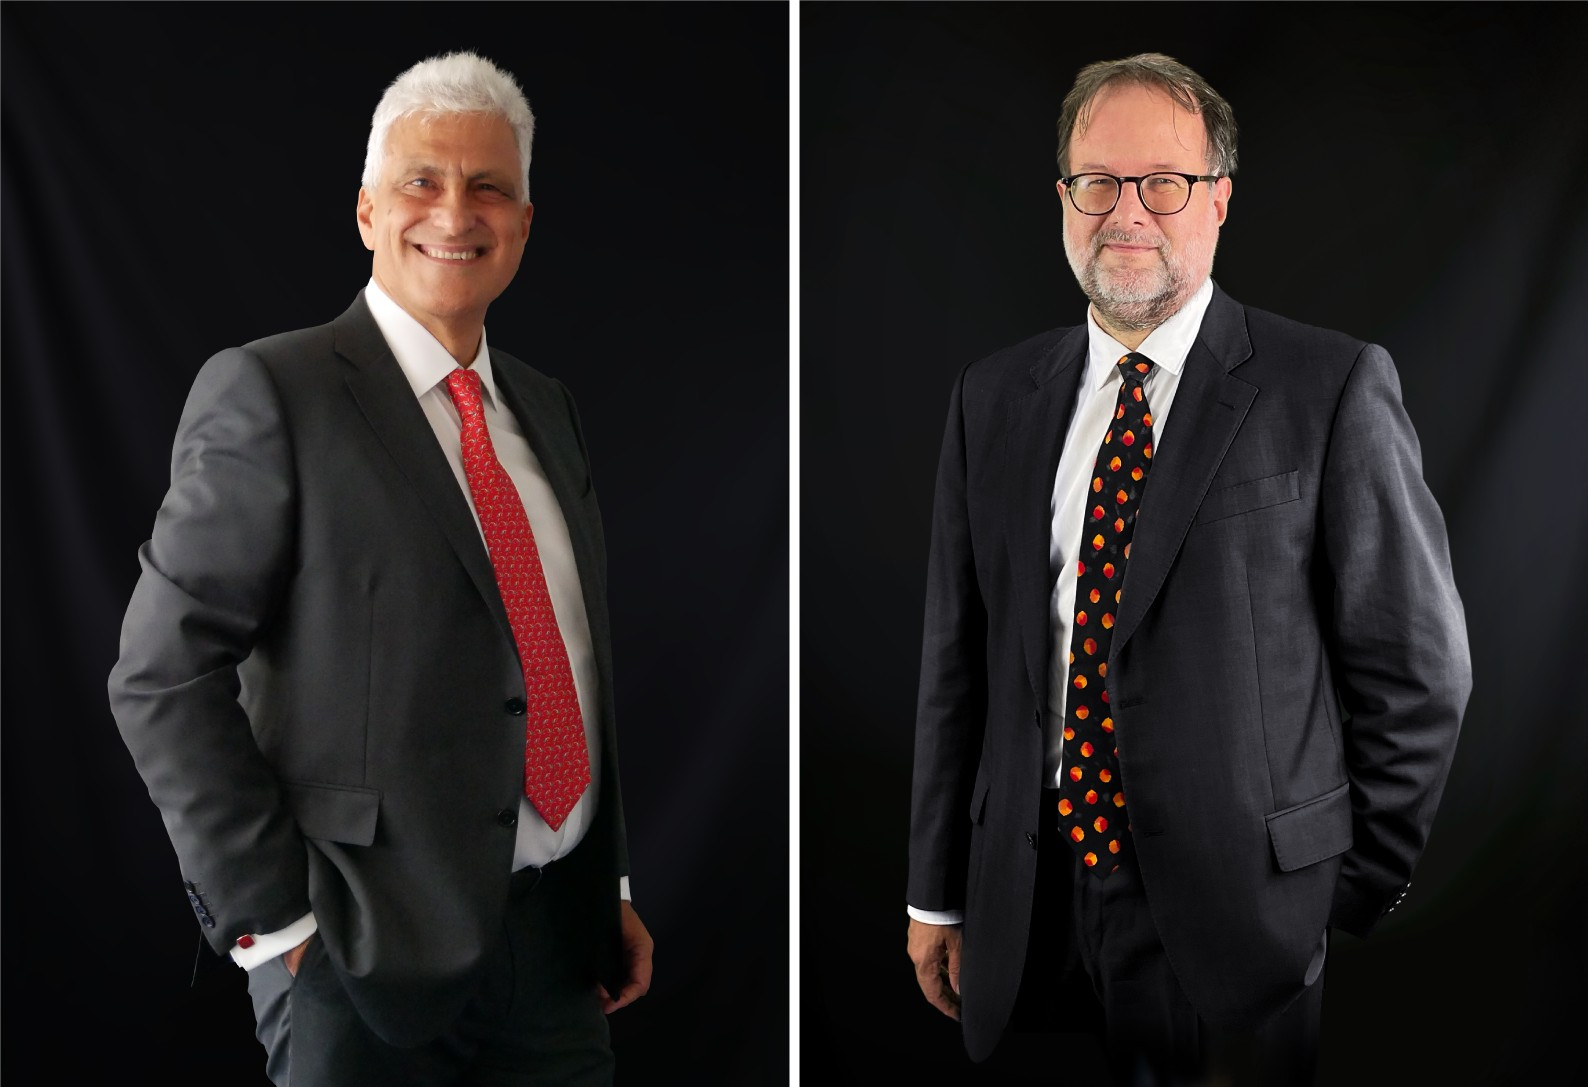 From left to right: Luigi Marciano, CEO and Founder, Objectway Group, and Klaus Friese, Co-owner and Managing Director, Die Software